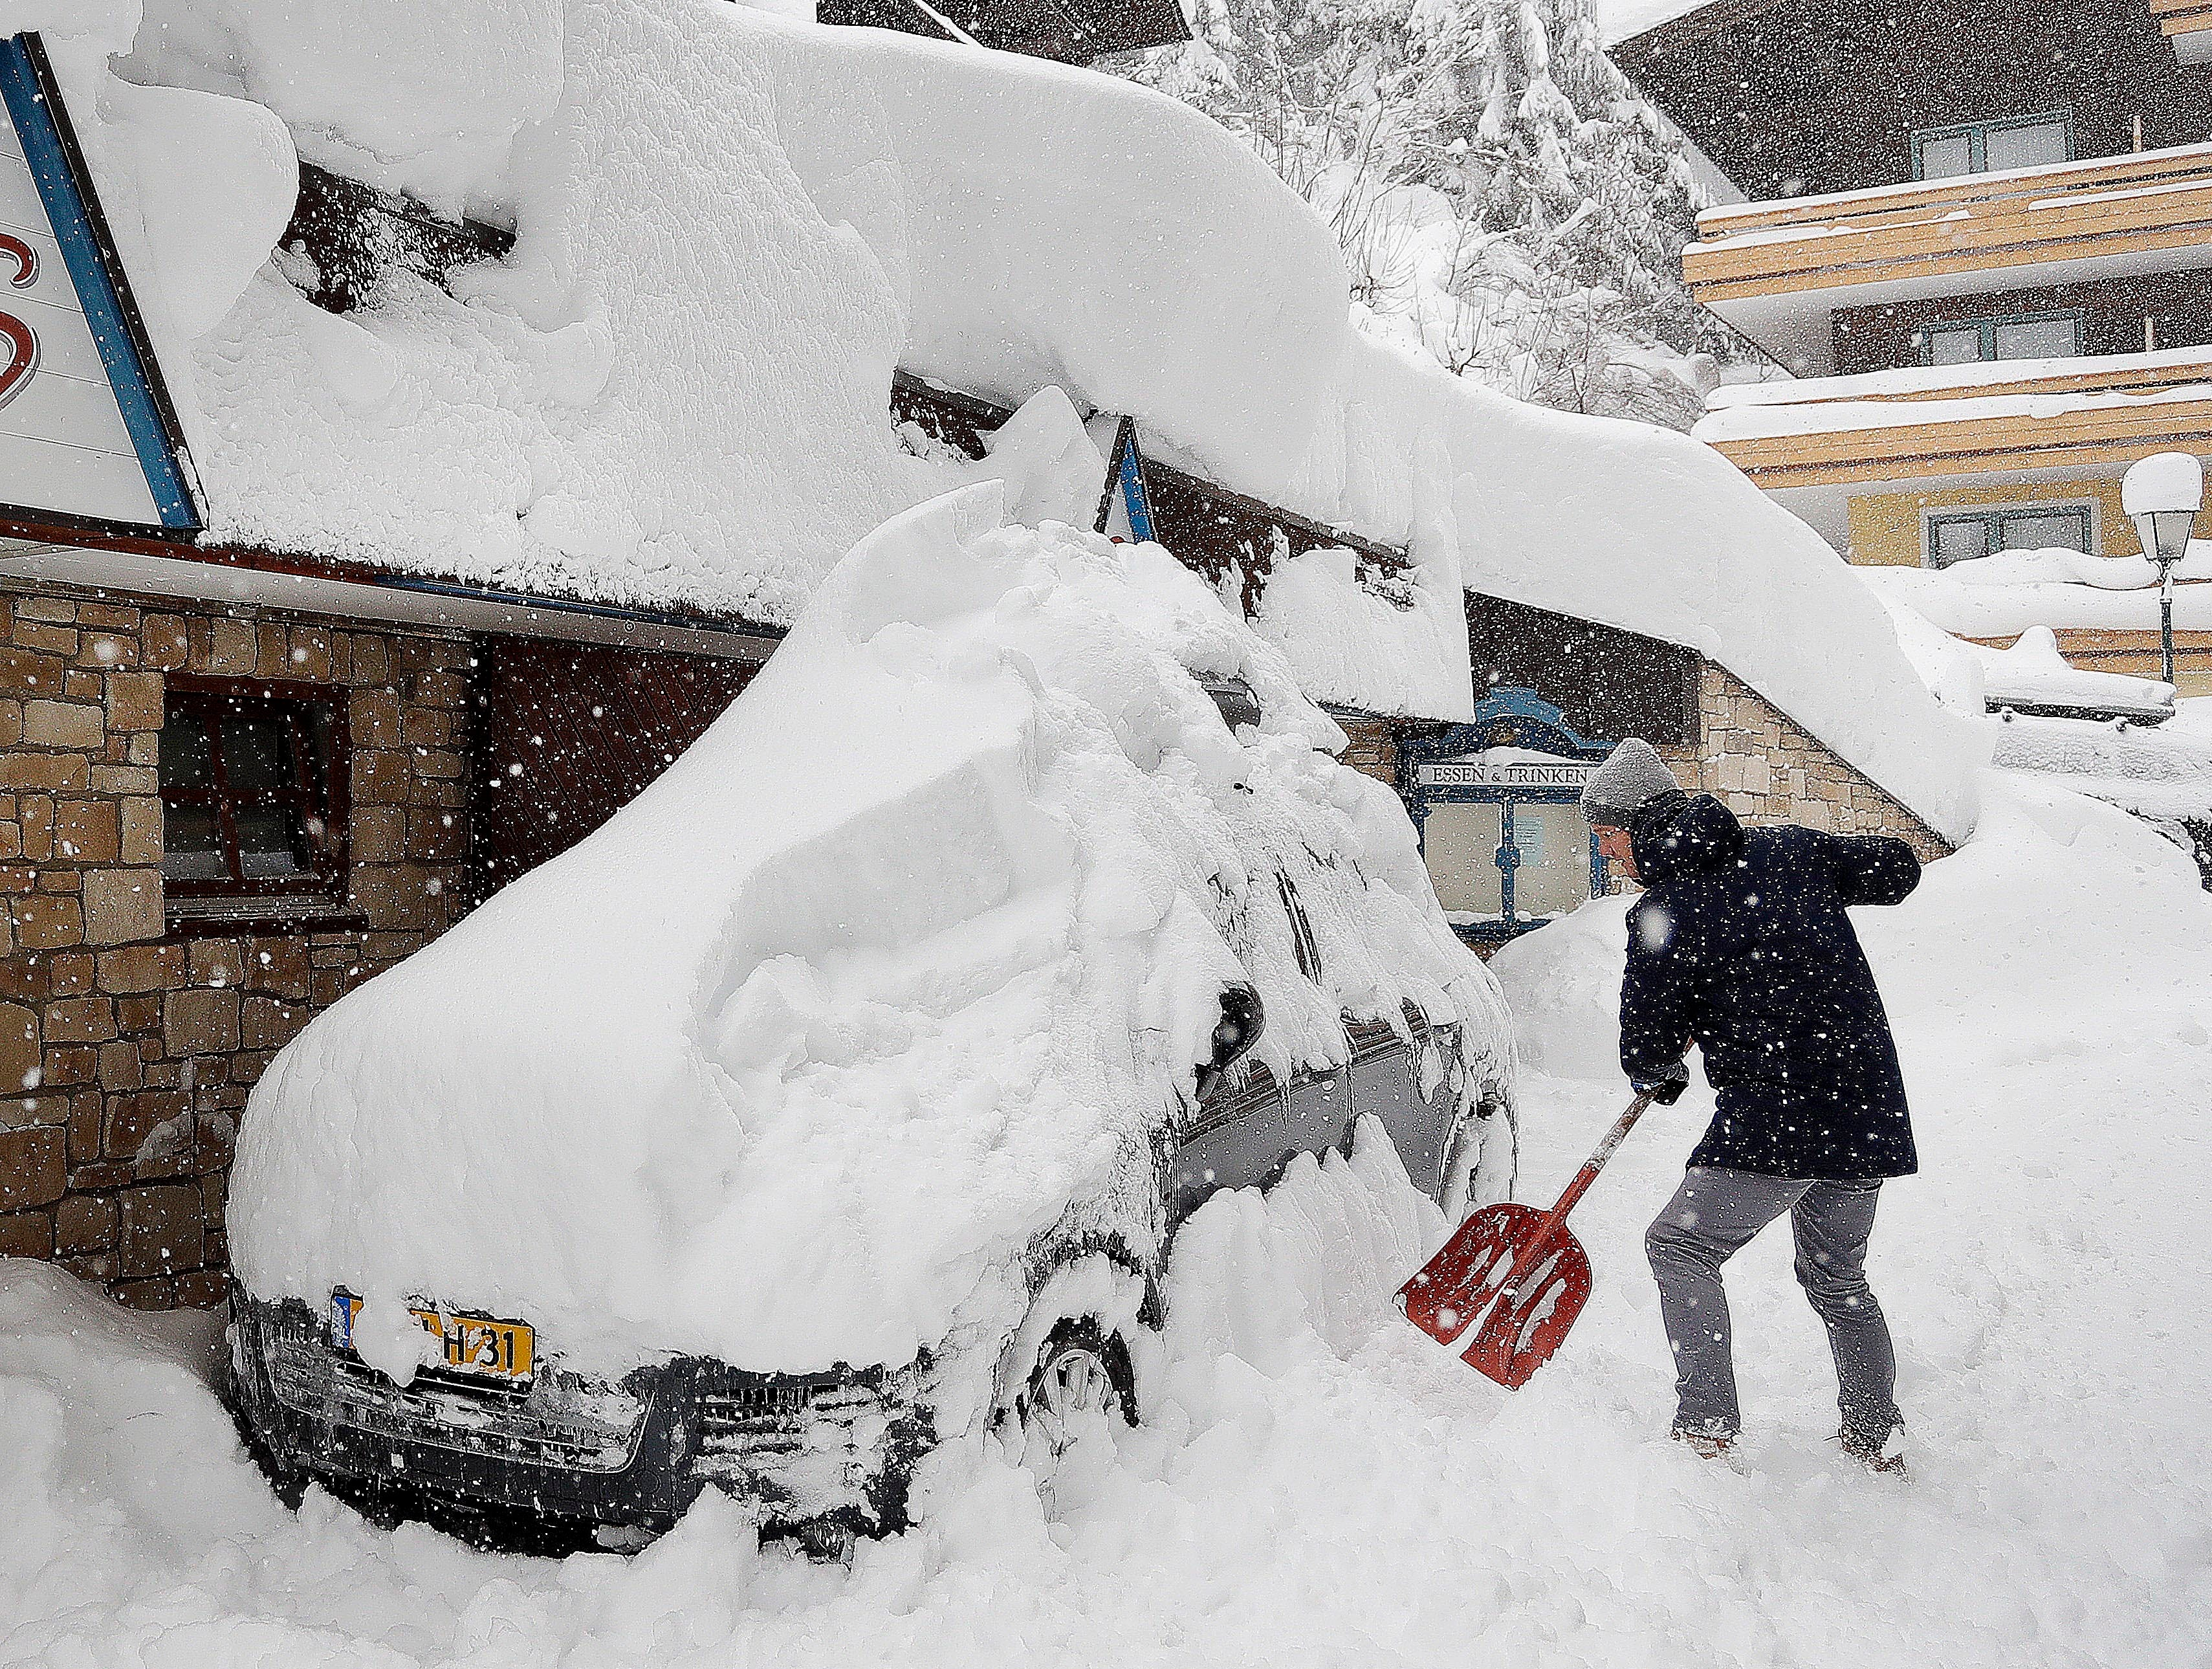 A ski tourist removes snow from a car after heavy snow falls in Filzmoos, Austria, Saturday, Jan. 5, 2019.